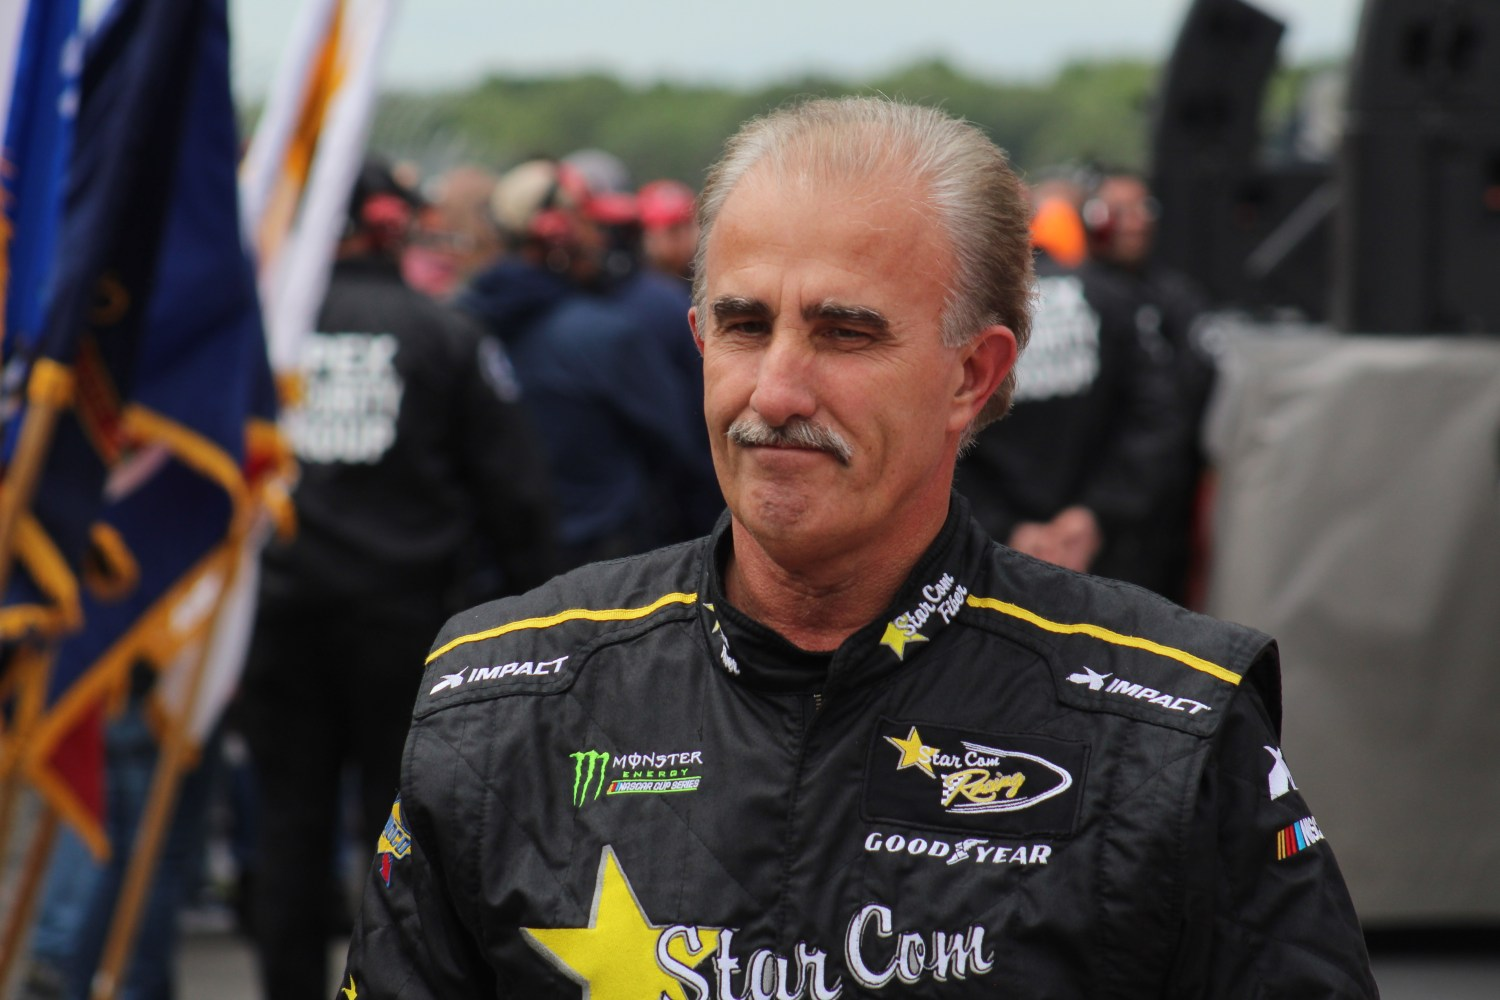 Derrike Cope walks during driver introductions ahead of the 2018 Pocono 400. (Tyler Head | The Racing Experts)